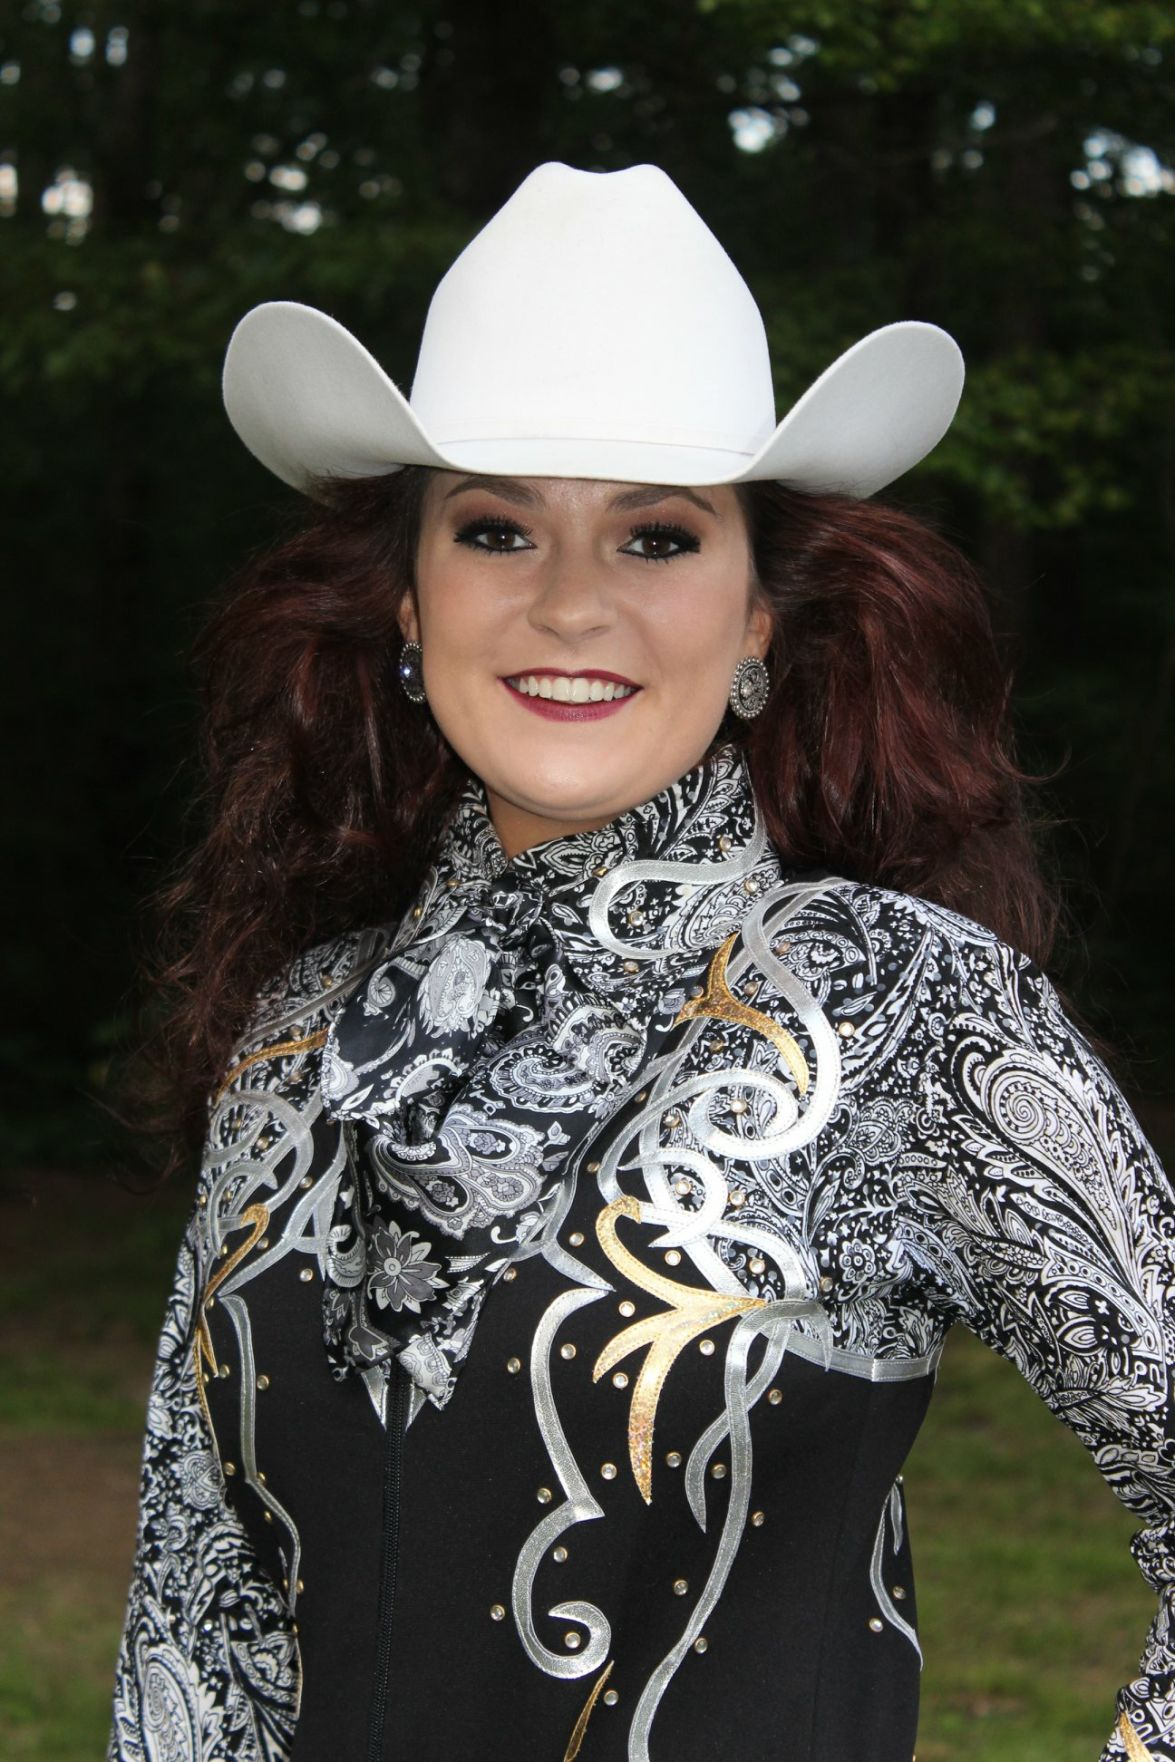 Athens Native Kaitlynn Norman Nabs Rodeo Queen Crown